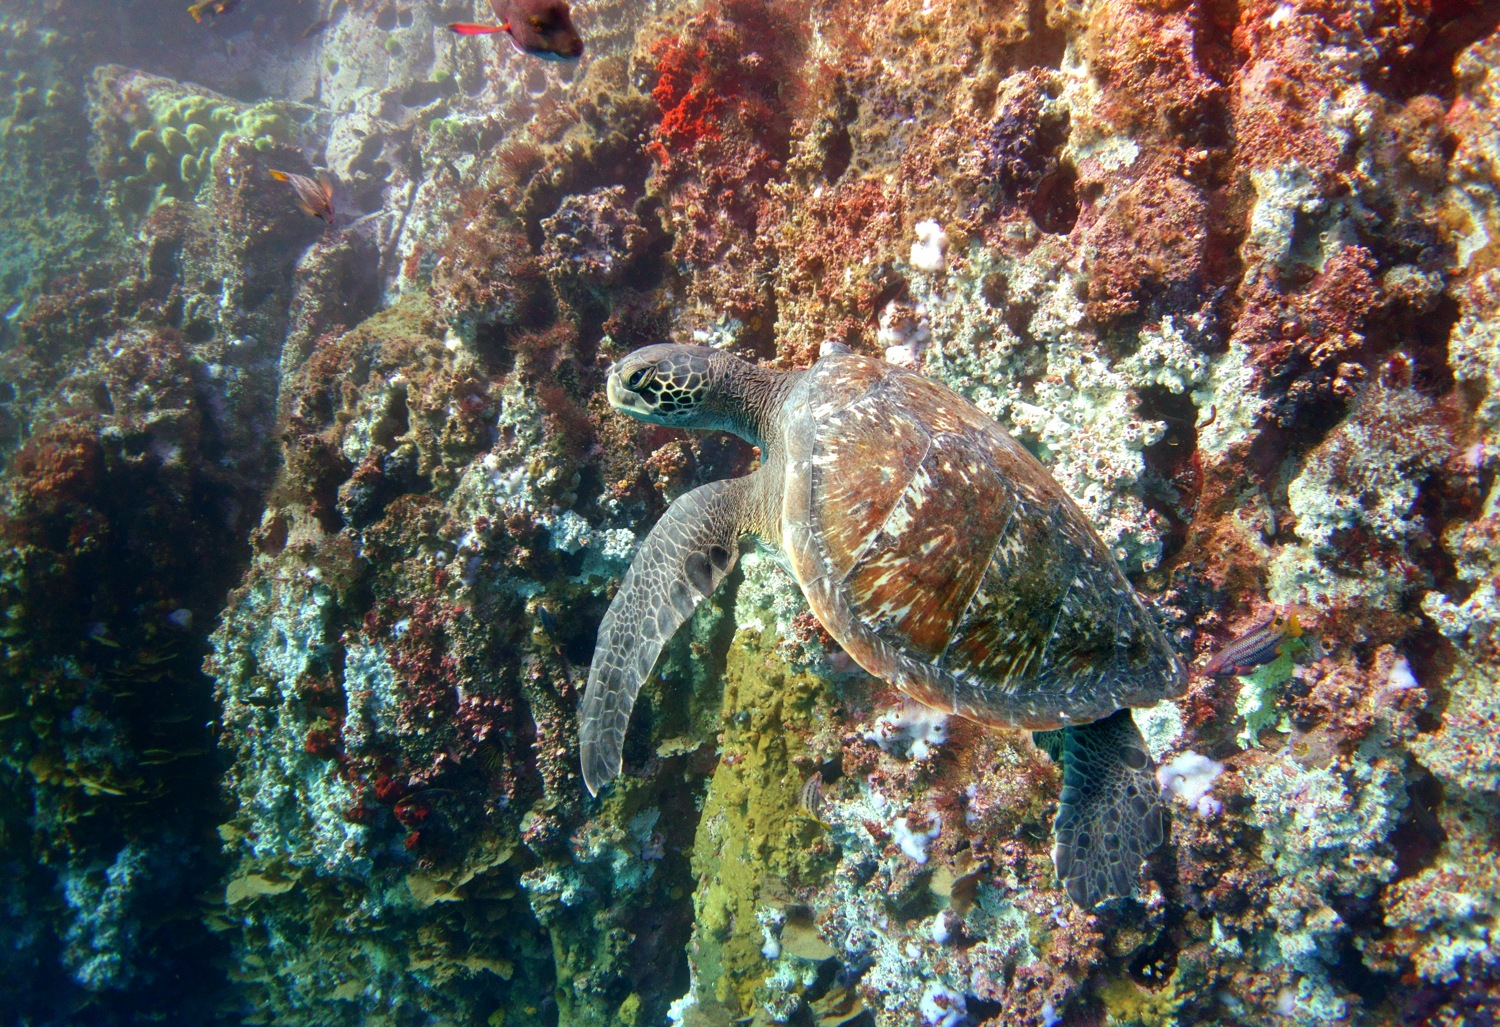 Green turtle with colourful rocks by Dave Currey